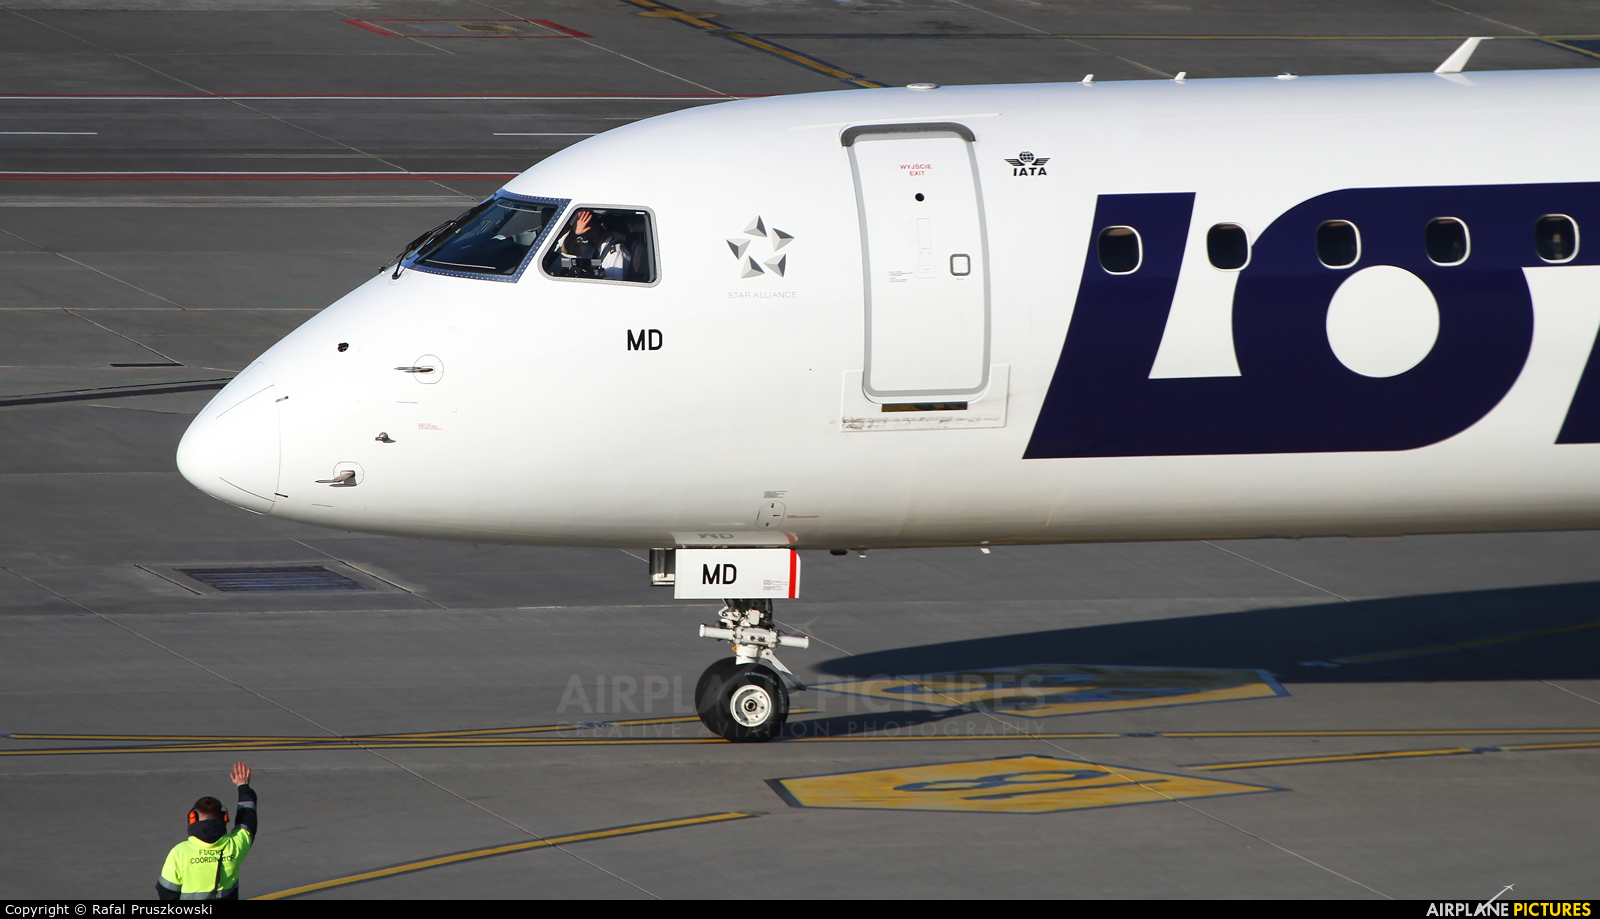 LOT - Polish Airlines SP-LMD aircraft at Warsaw - Frederic Chopin